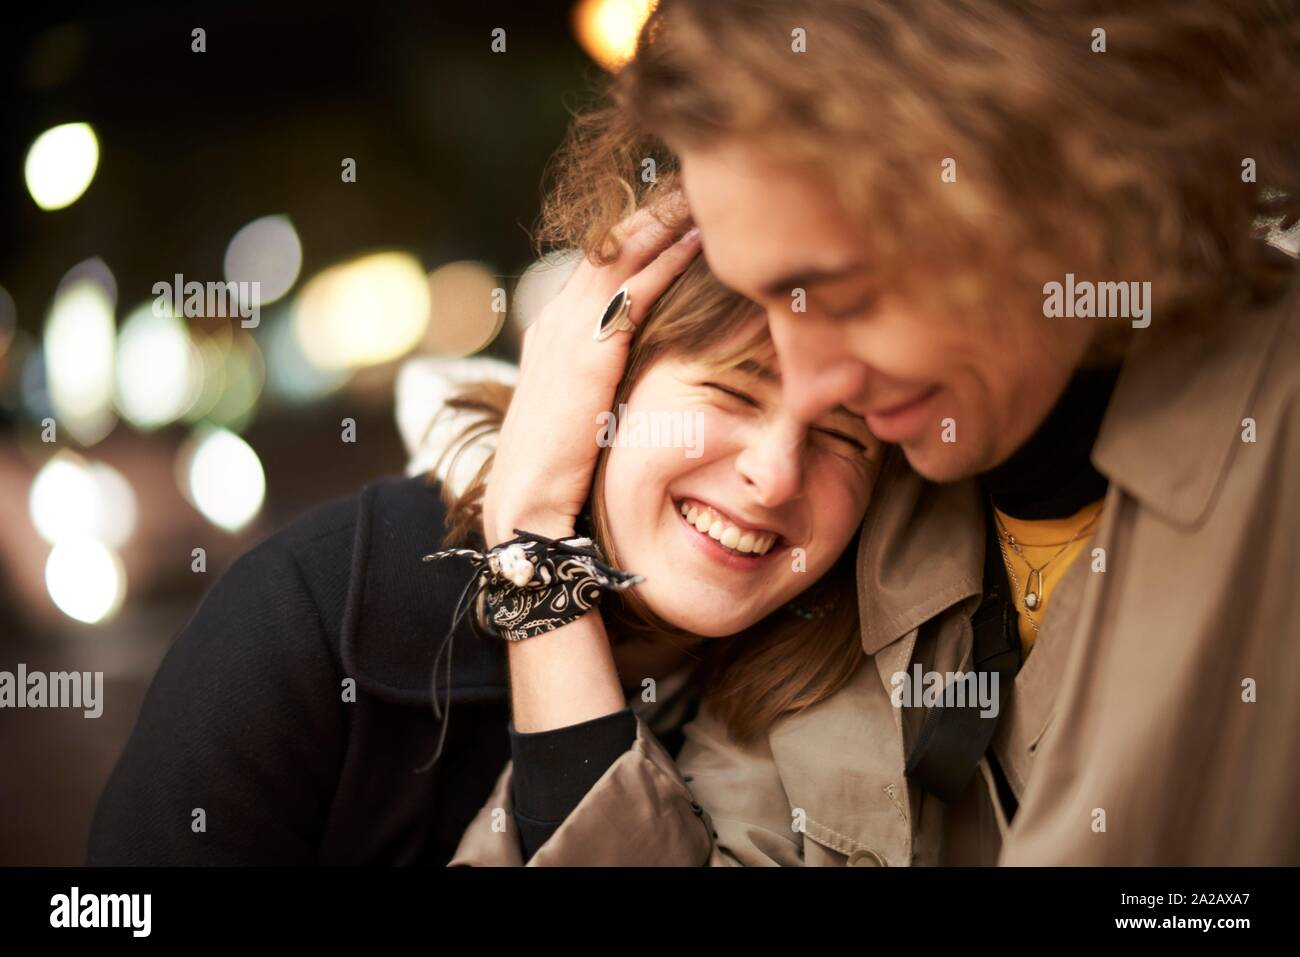 woman laughing in arms of man at night in city Berlin, Germany. Stock Photo